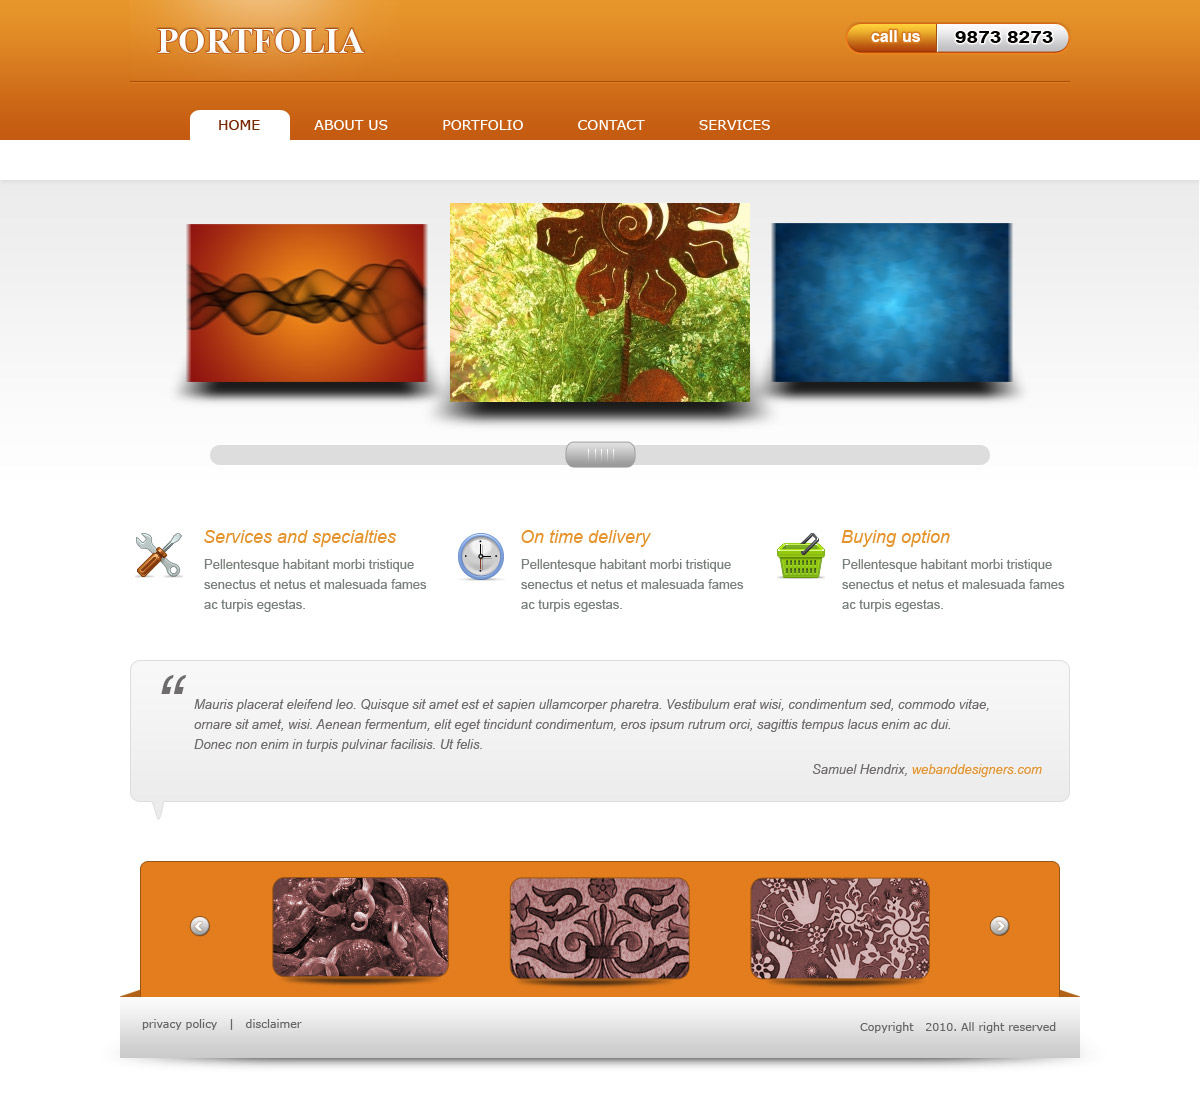 Web And Designers Complete Resource Platform For Web Designers And Developers Design A Website Layout In Photoshop Portfolia